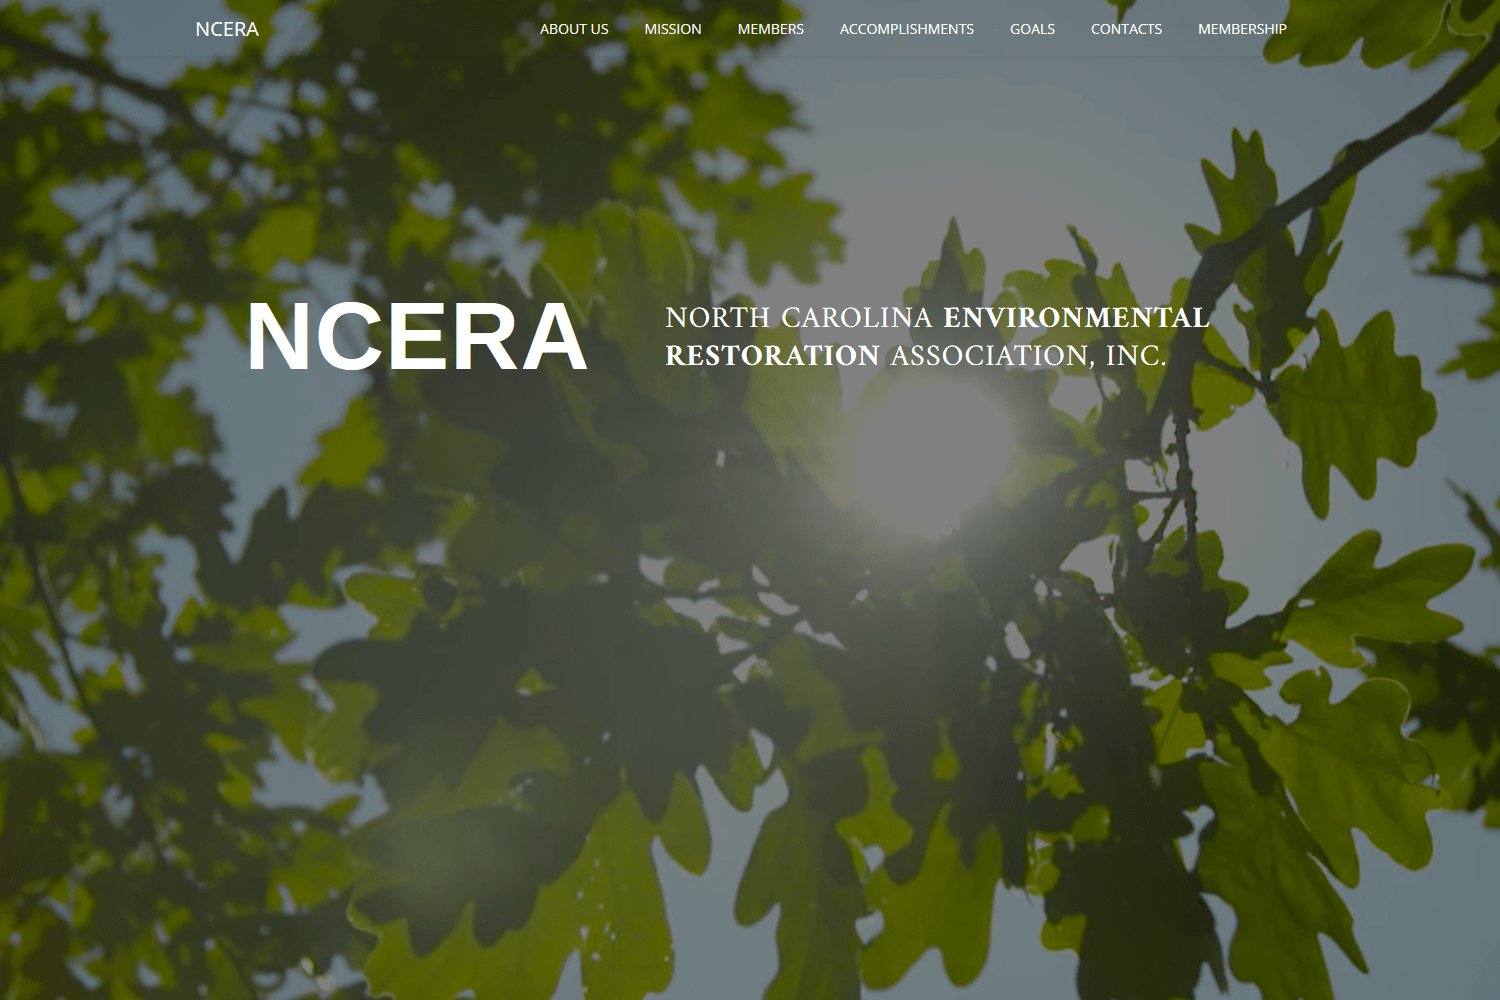 NCERA Website Landing